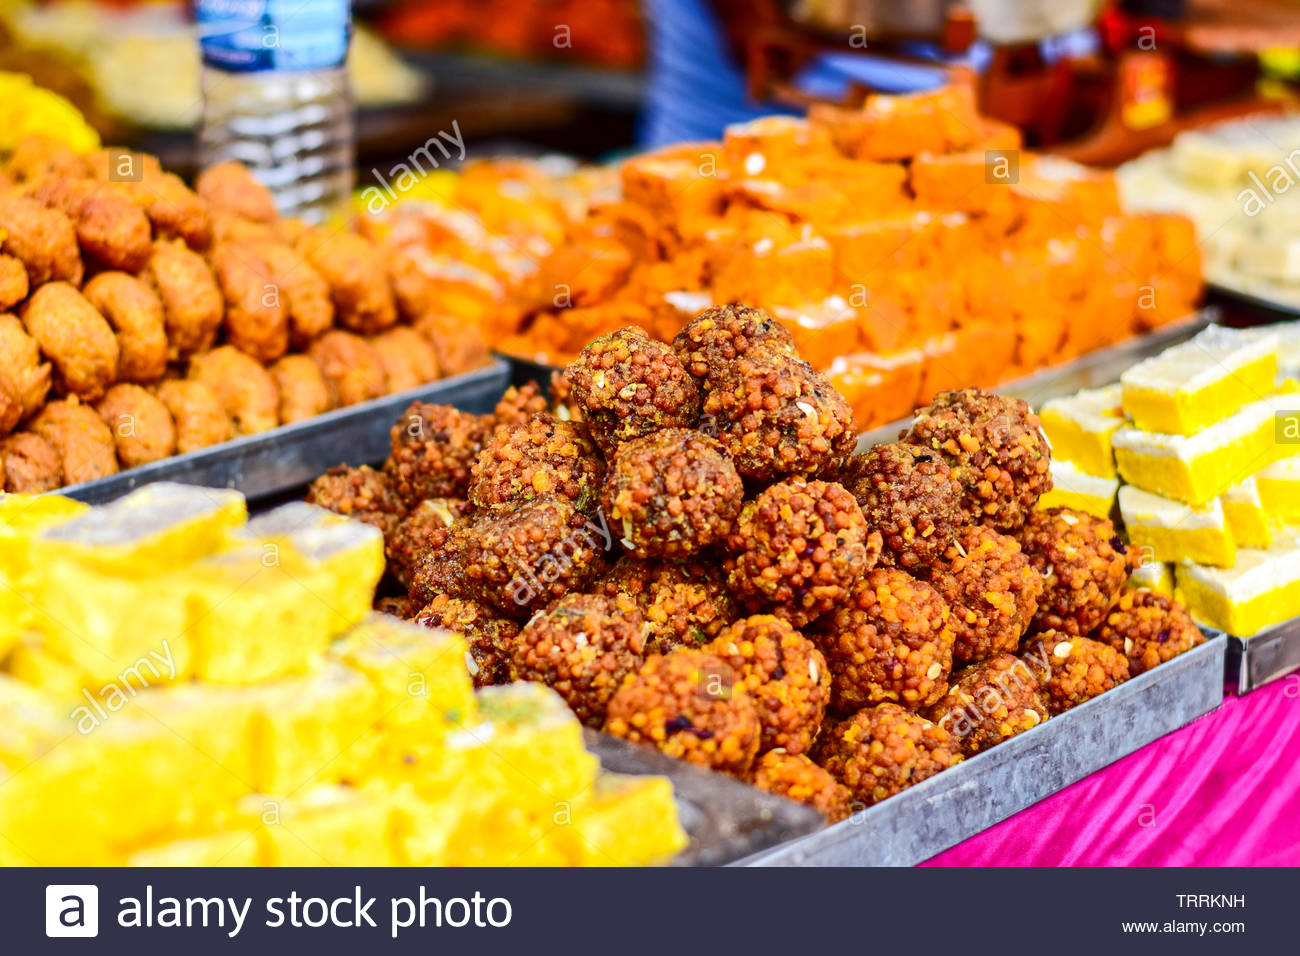 Indian sweet desserts are selling in local market. - Stock Image